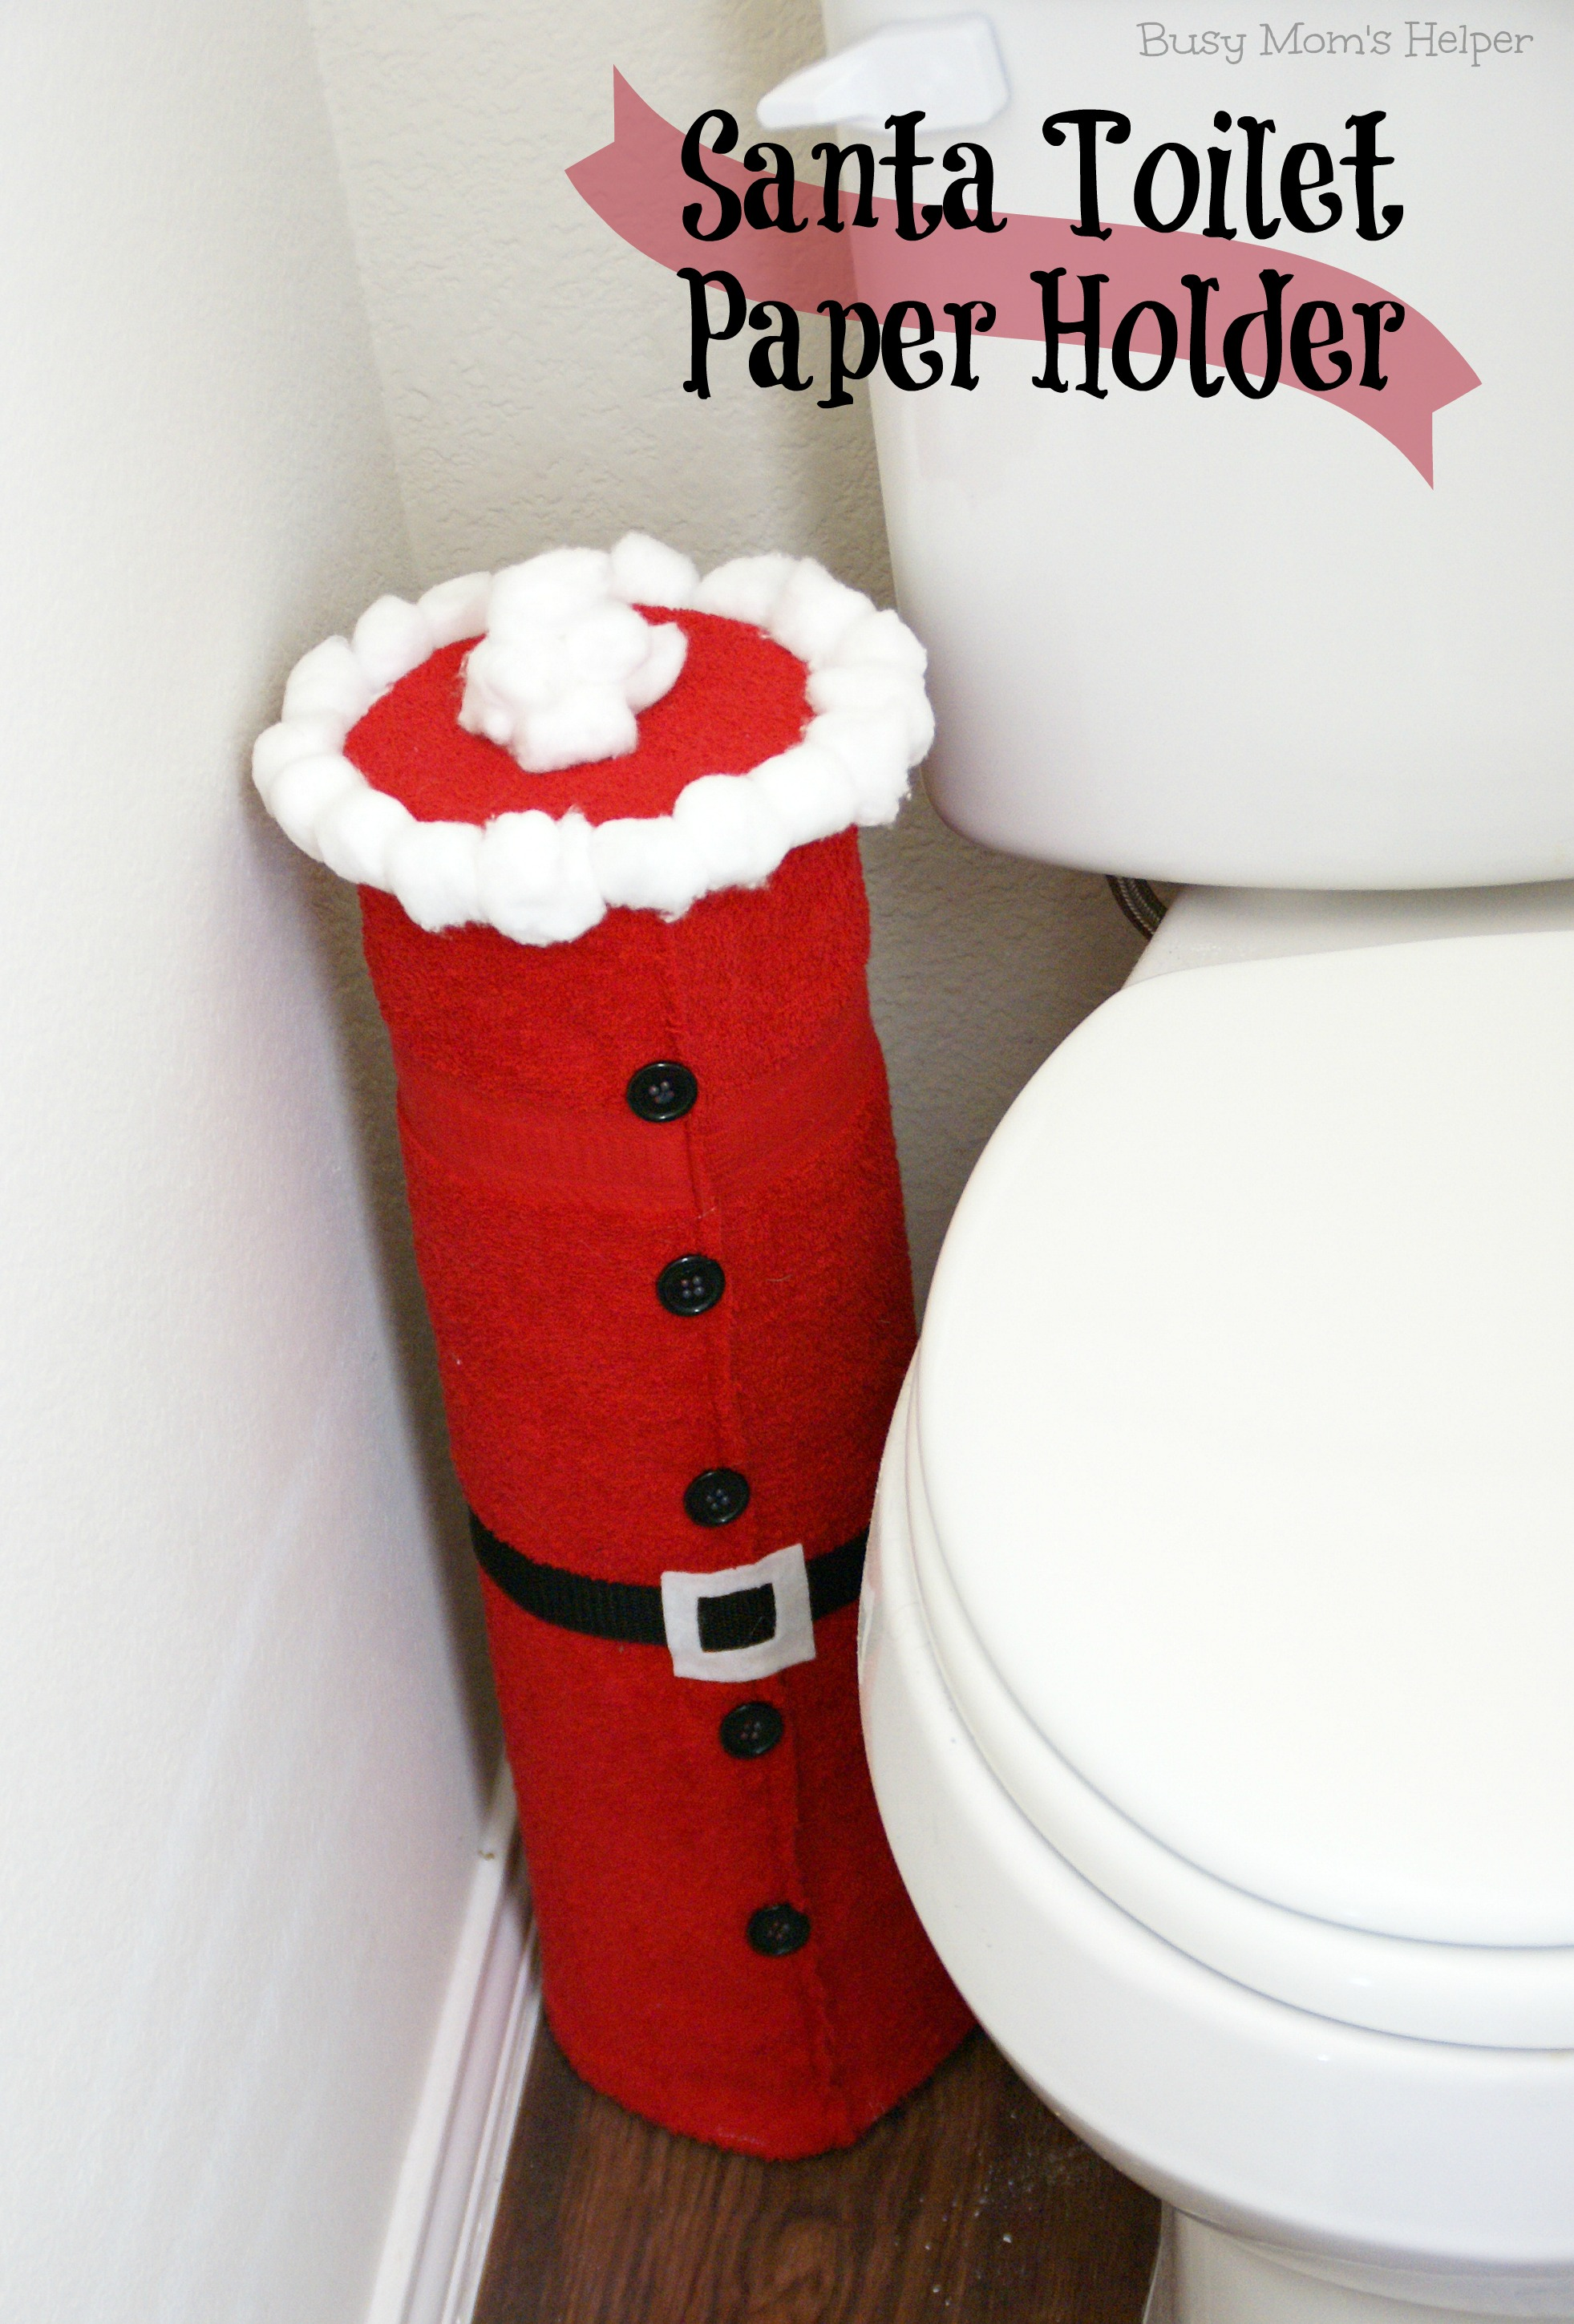 Santa toilet paper holder busy moms helper santa toilet paper holder tutorial busy moms helper jeuxipadfo Image collections